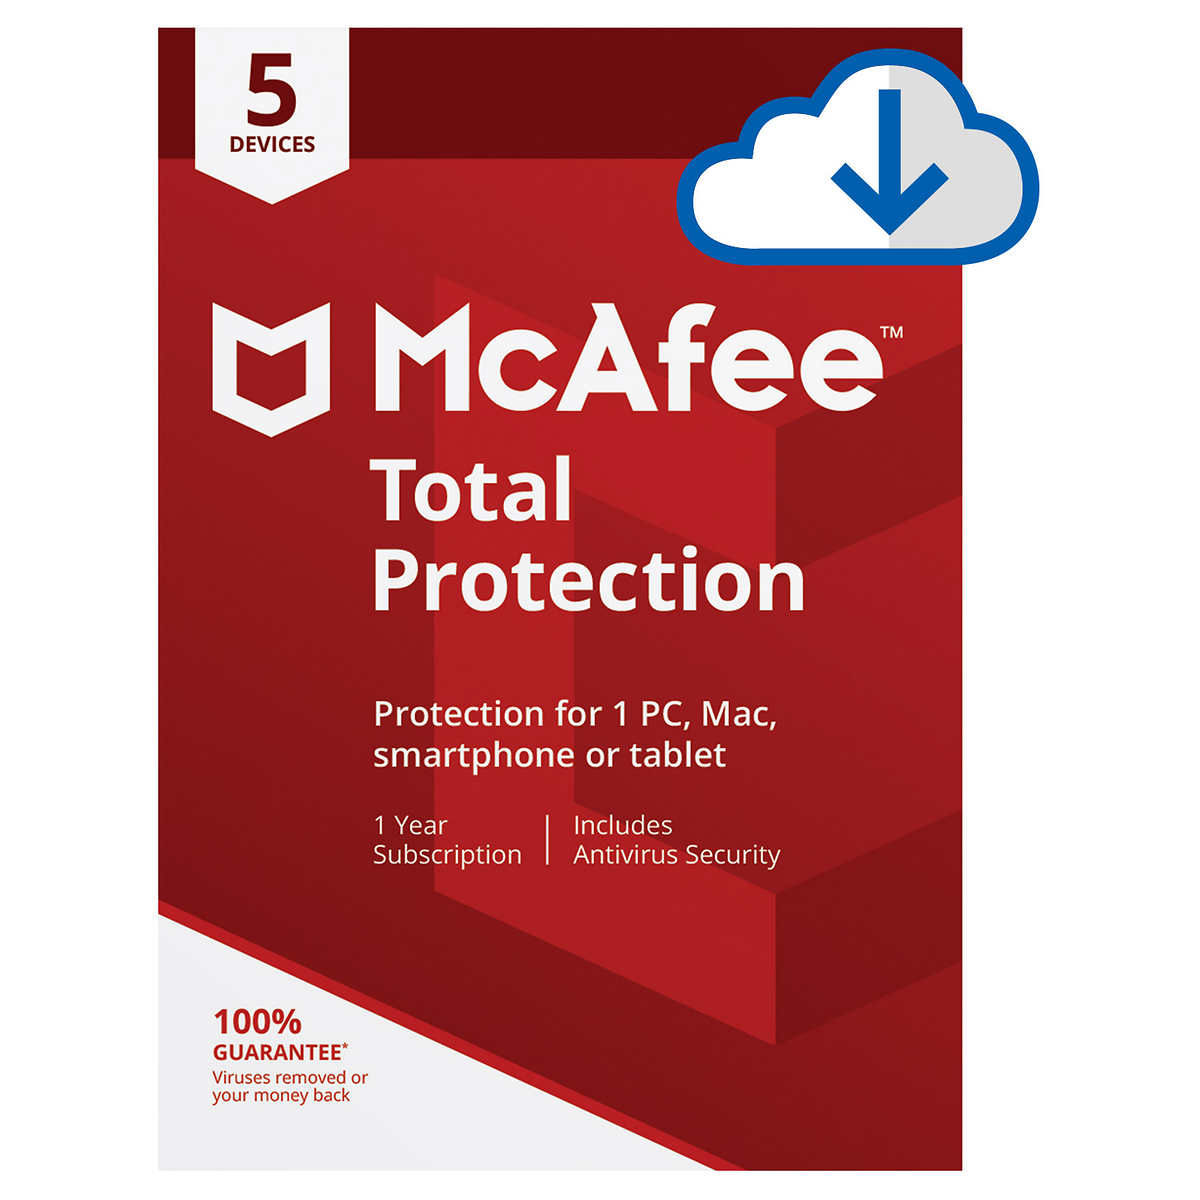 Mcafee Total Protection 5 Devices 1 Year Subscription E Delivery